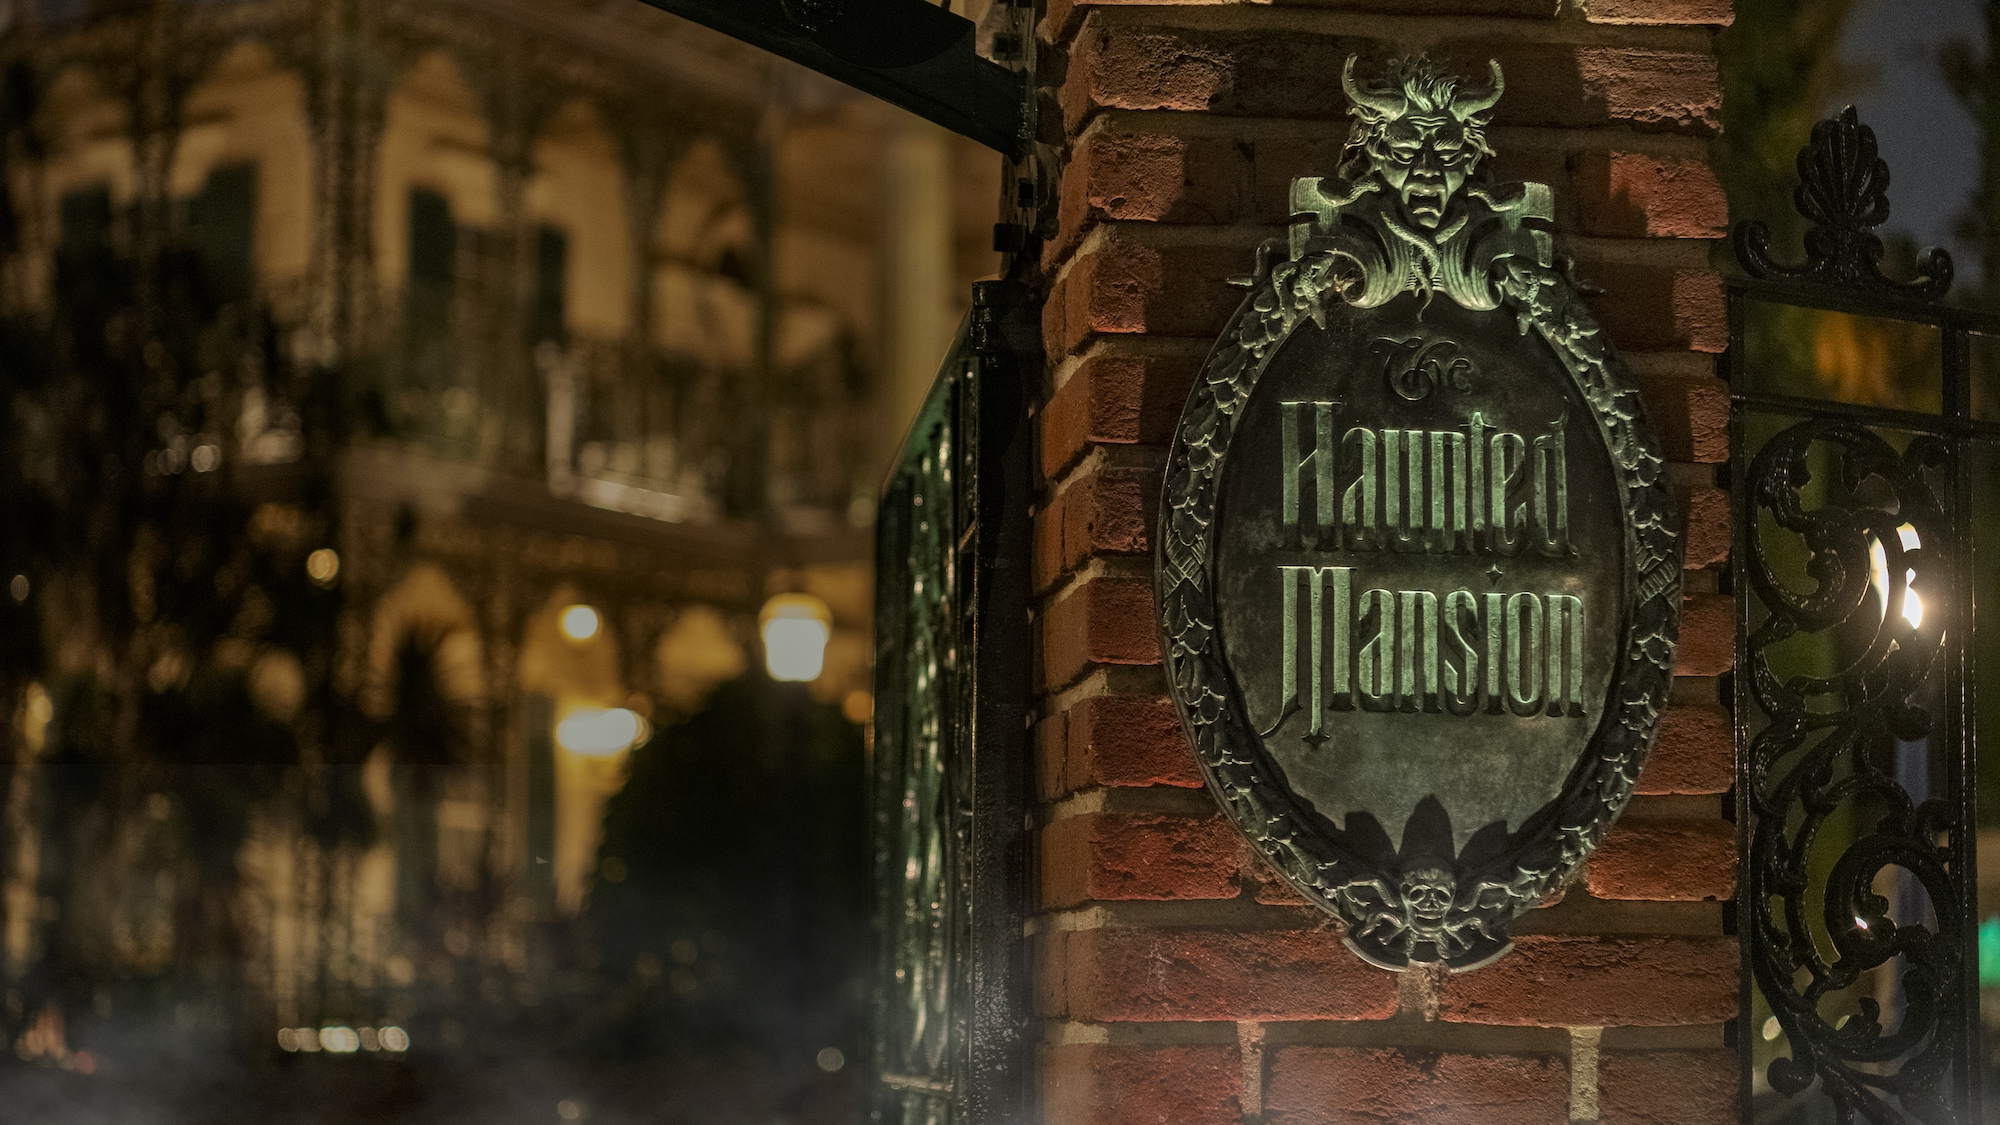 Image of the gate entrance sign of the Haunted Mansion.